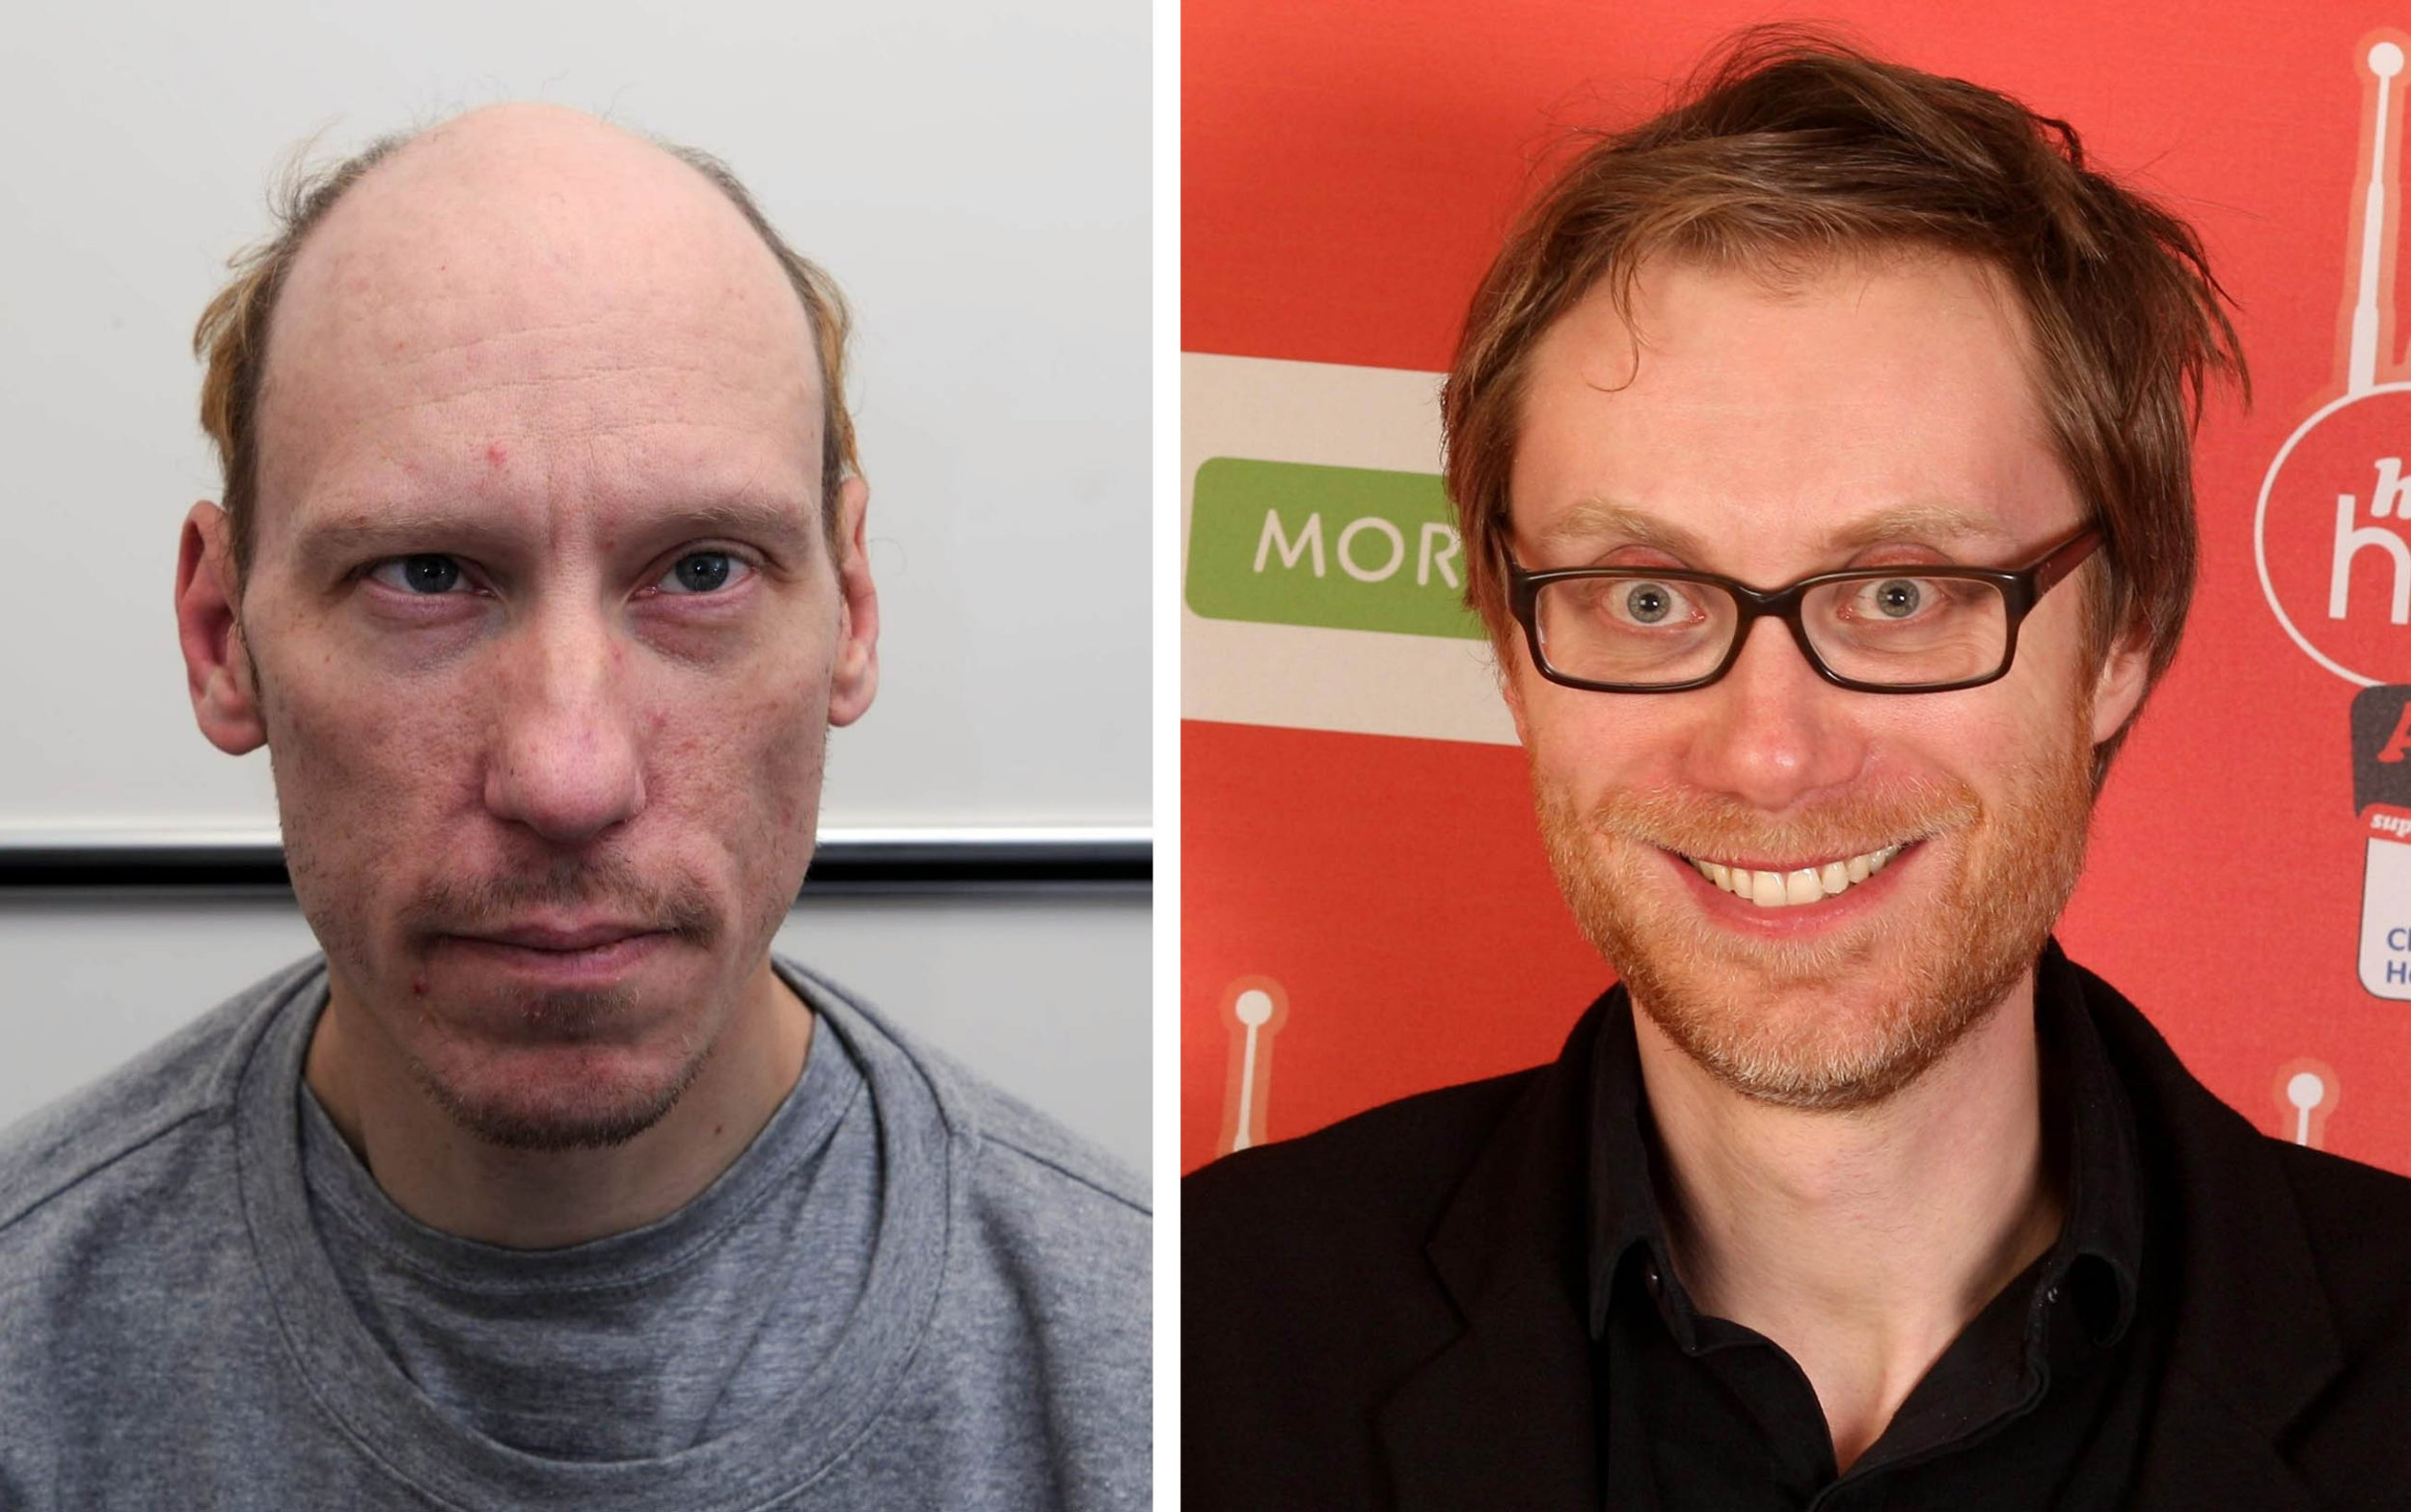 Embargoed to 0001 Saturday February 09 Metropolitan Police undated handout file photo of Stephen Port (left) and Stephen Merchant as the actor will play the serial killer in a new BBC drama, The Barking Murders, about the murders committed by Port. PRESS ASSOCIATION Photo. Issue date: Saturday February 9, 2019. The Barking Murders will be told from the point of the view of the families of the victims, focusing on their fight to uncover the truth about what happened to their sons and brothers. See PA story SHOWBIZ Barking. Photo credit should read: Metropolitan Police/Dominic Lipinski/PA Wire NOTE TO EDITORS: This handout photo may only be used in for editorial reporting purposes for the contemporaneous illustration of events, things or the people in the image or facts mentioned in the caption. Reuse of the picture may require further permission from the copyright holder.